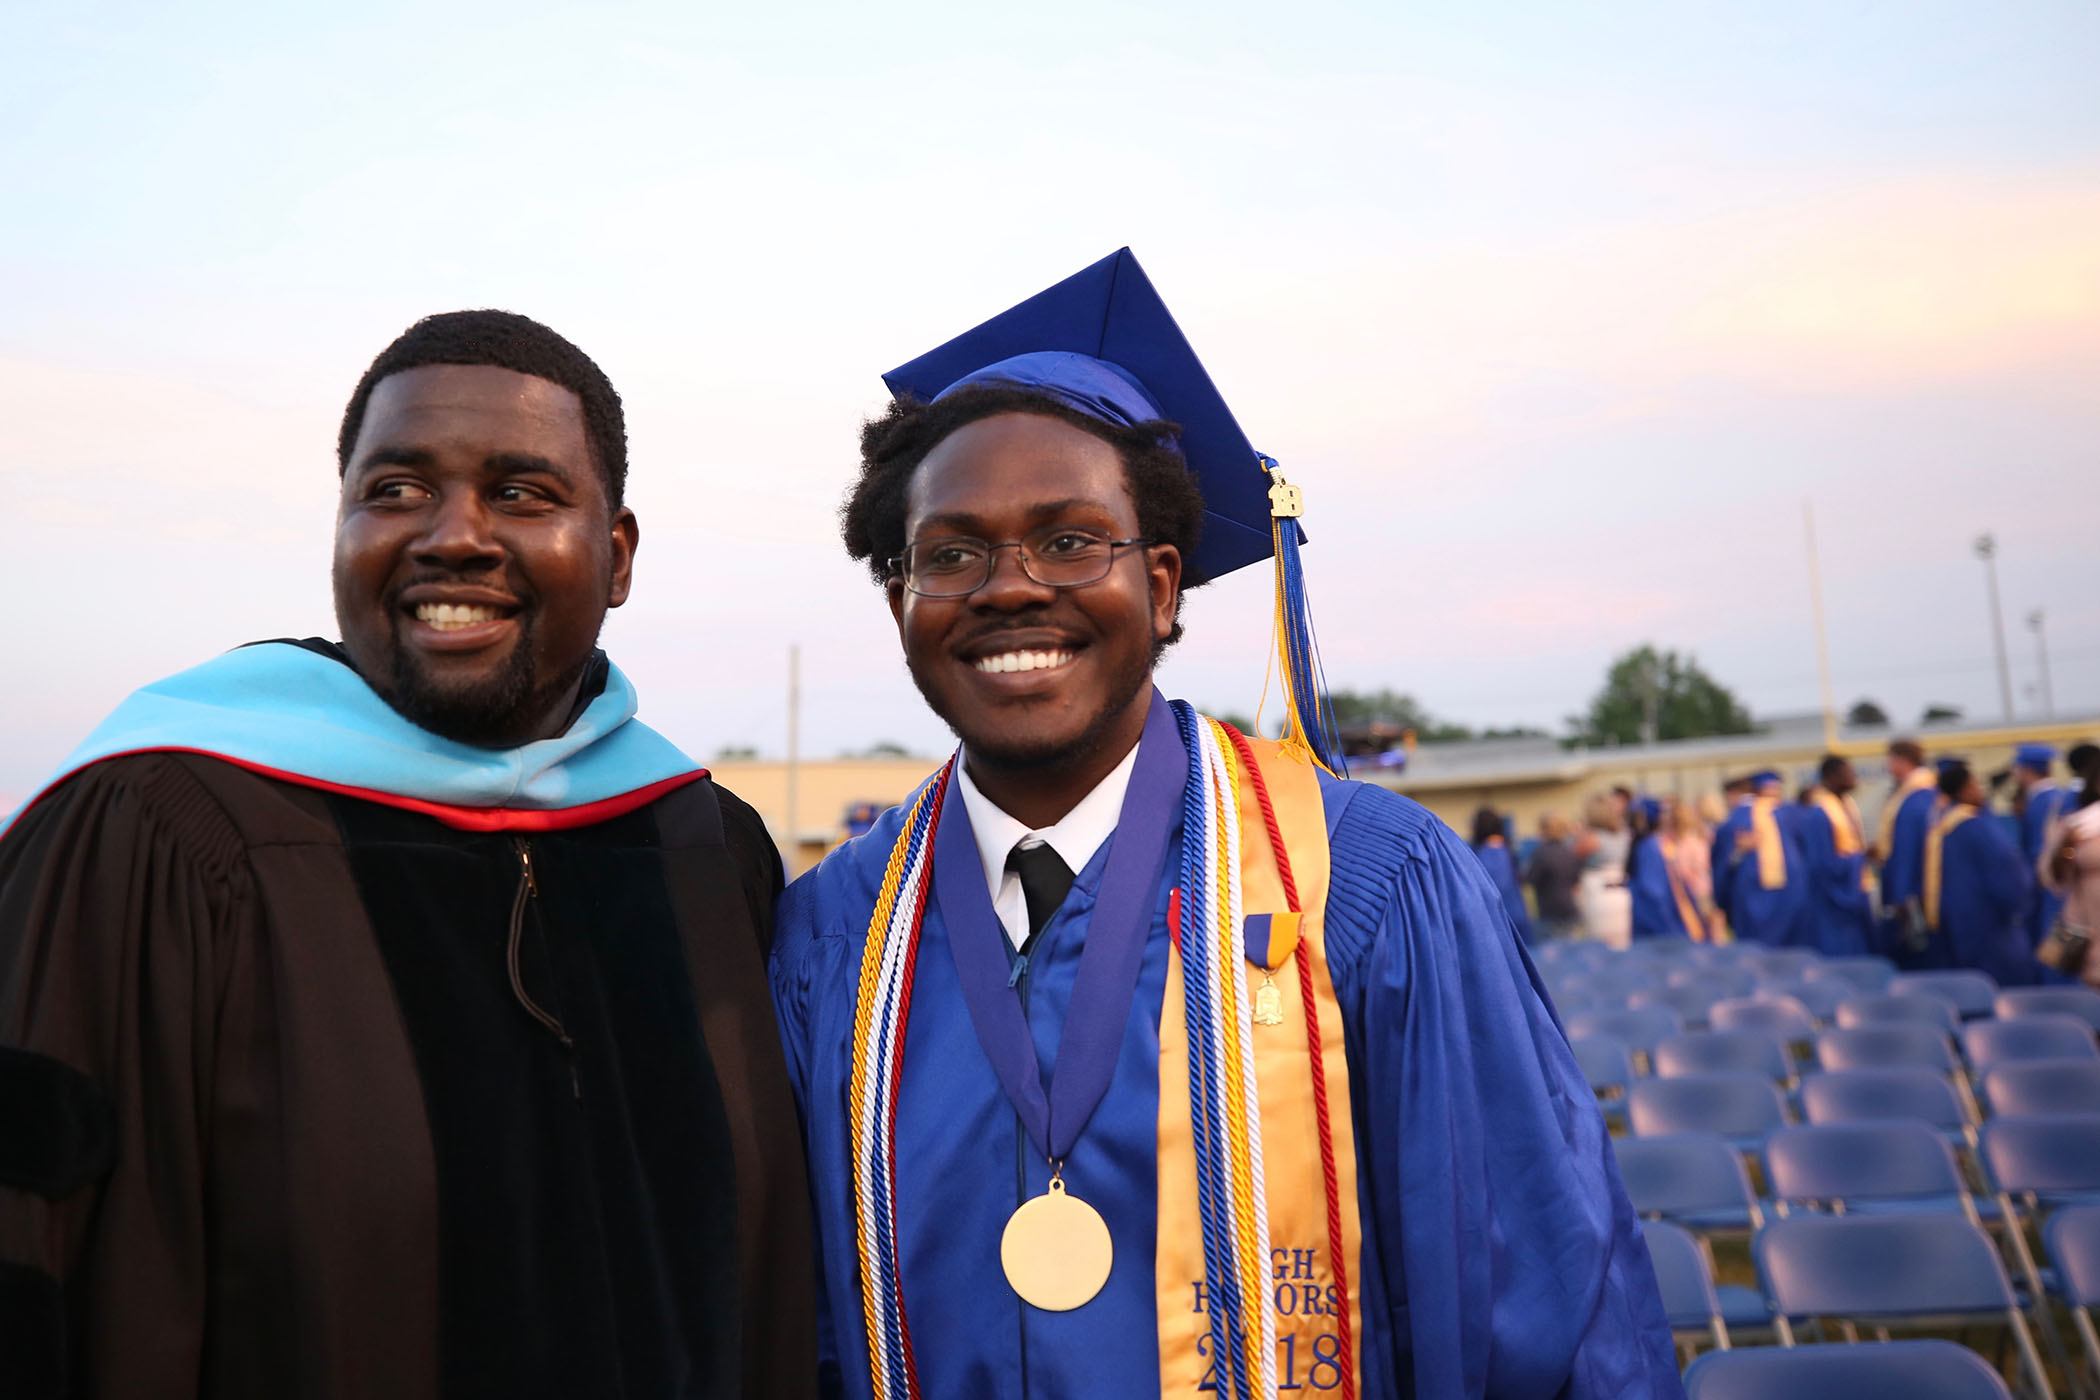 The QHS Valedictorian stands with Dr. Savage after graduation.